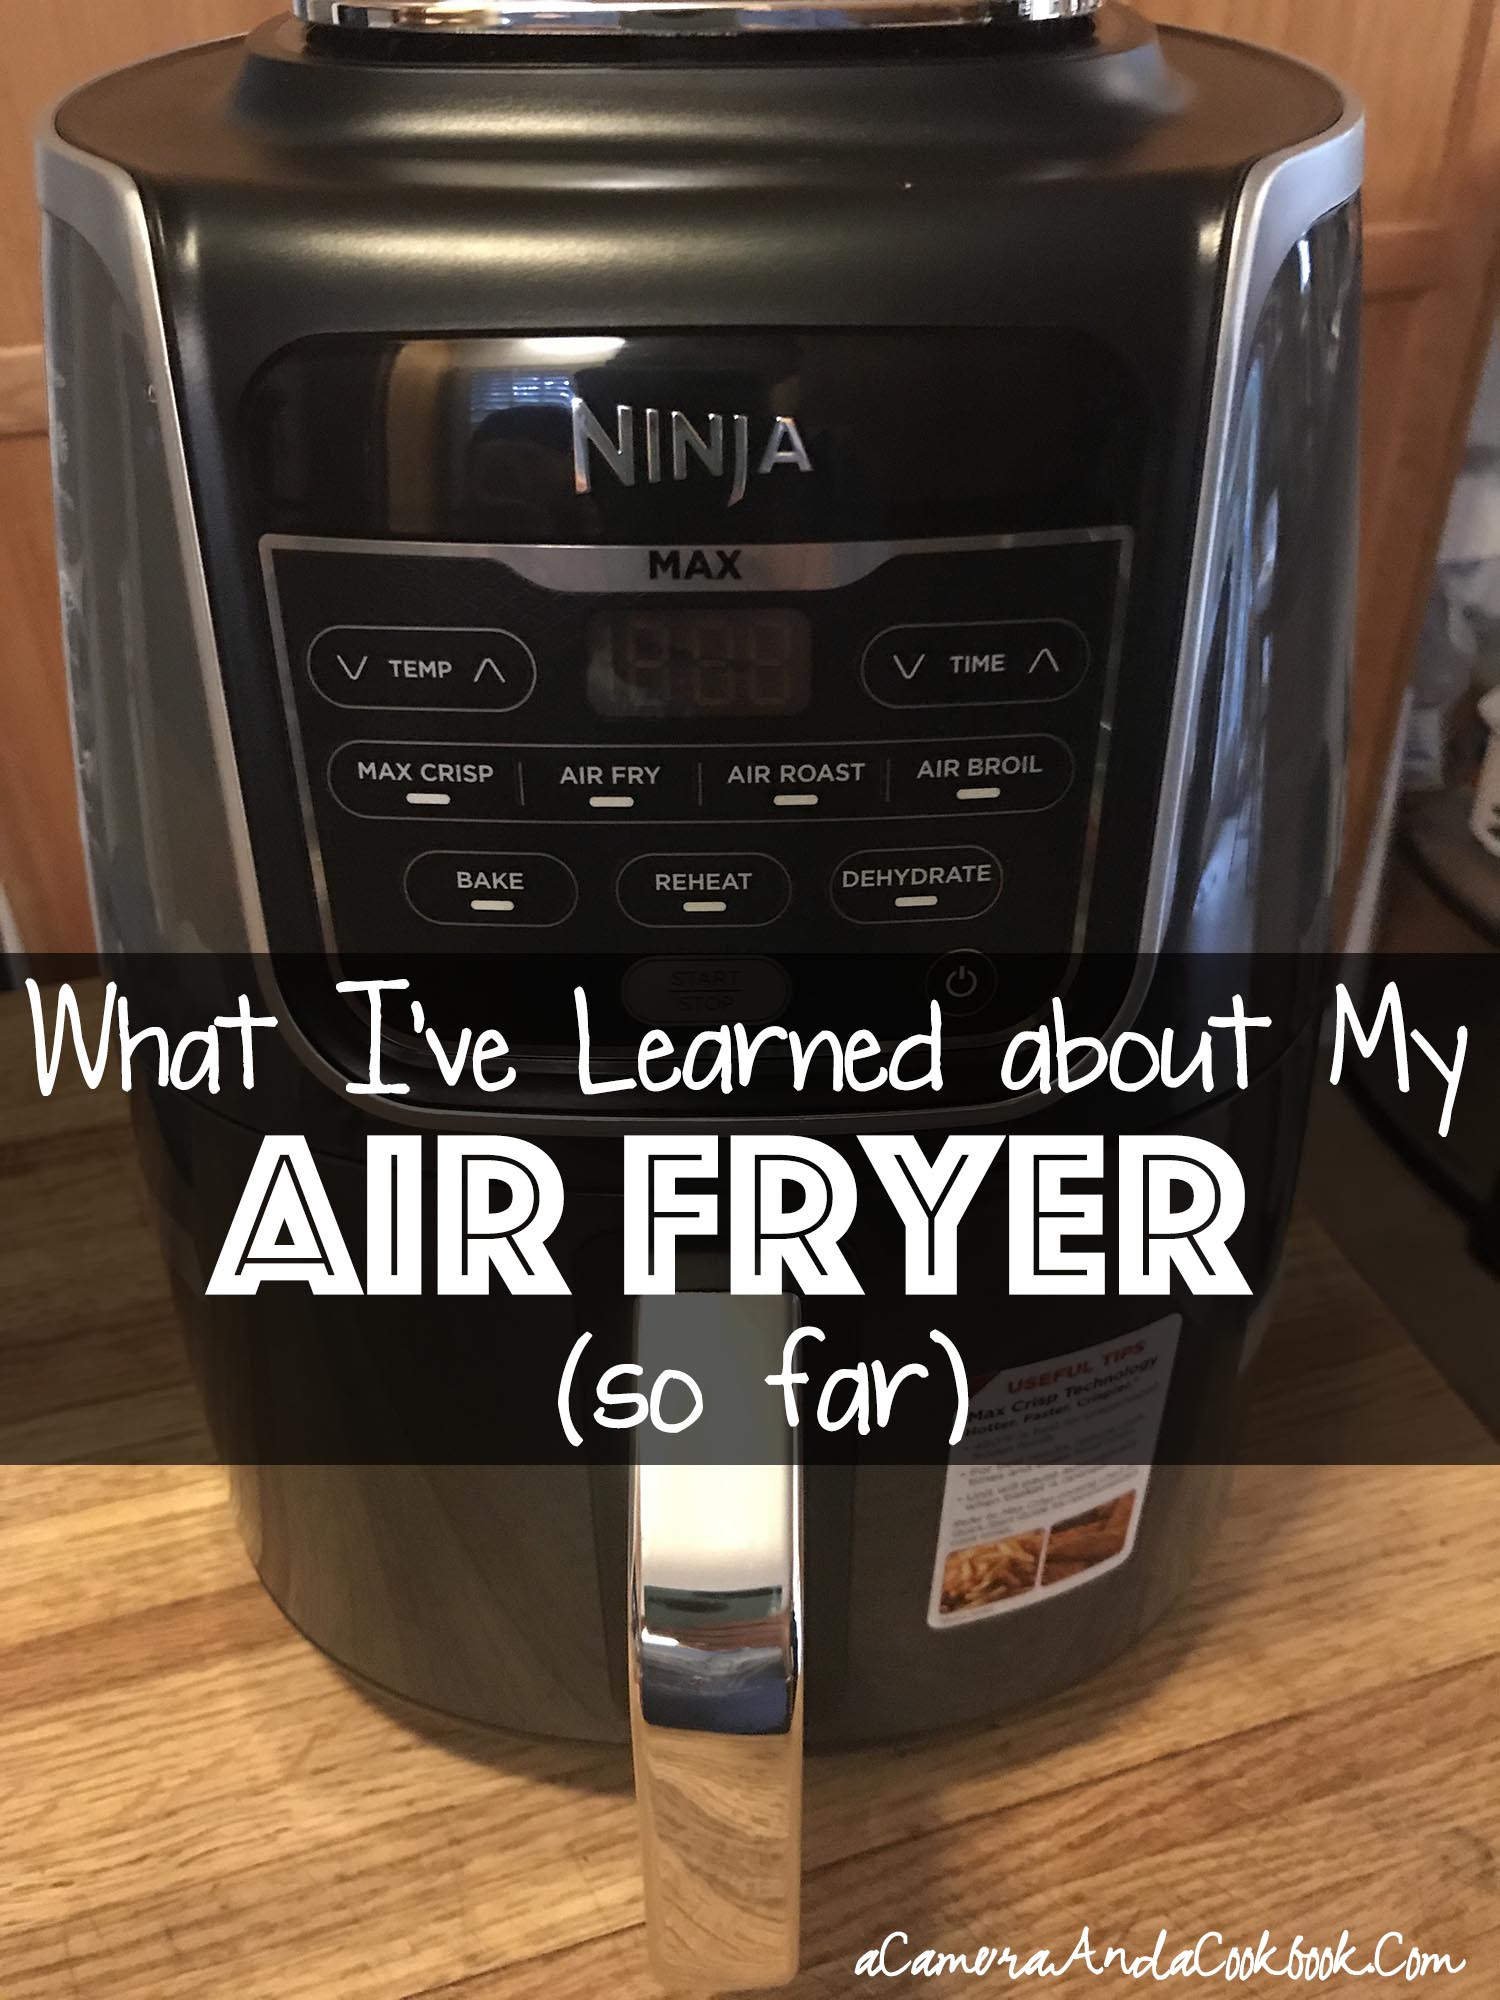 What I've Learned about My Air Fryer (so far)